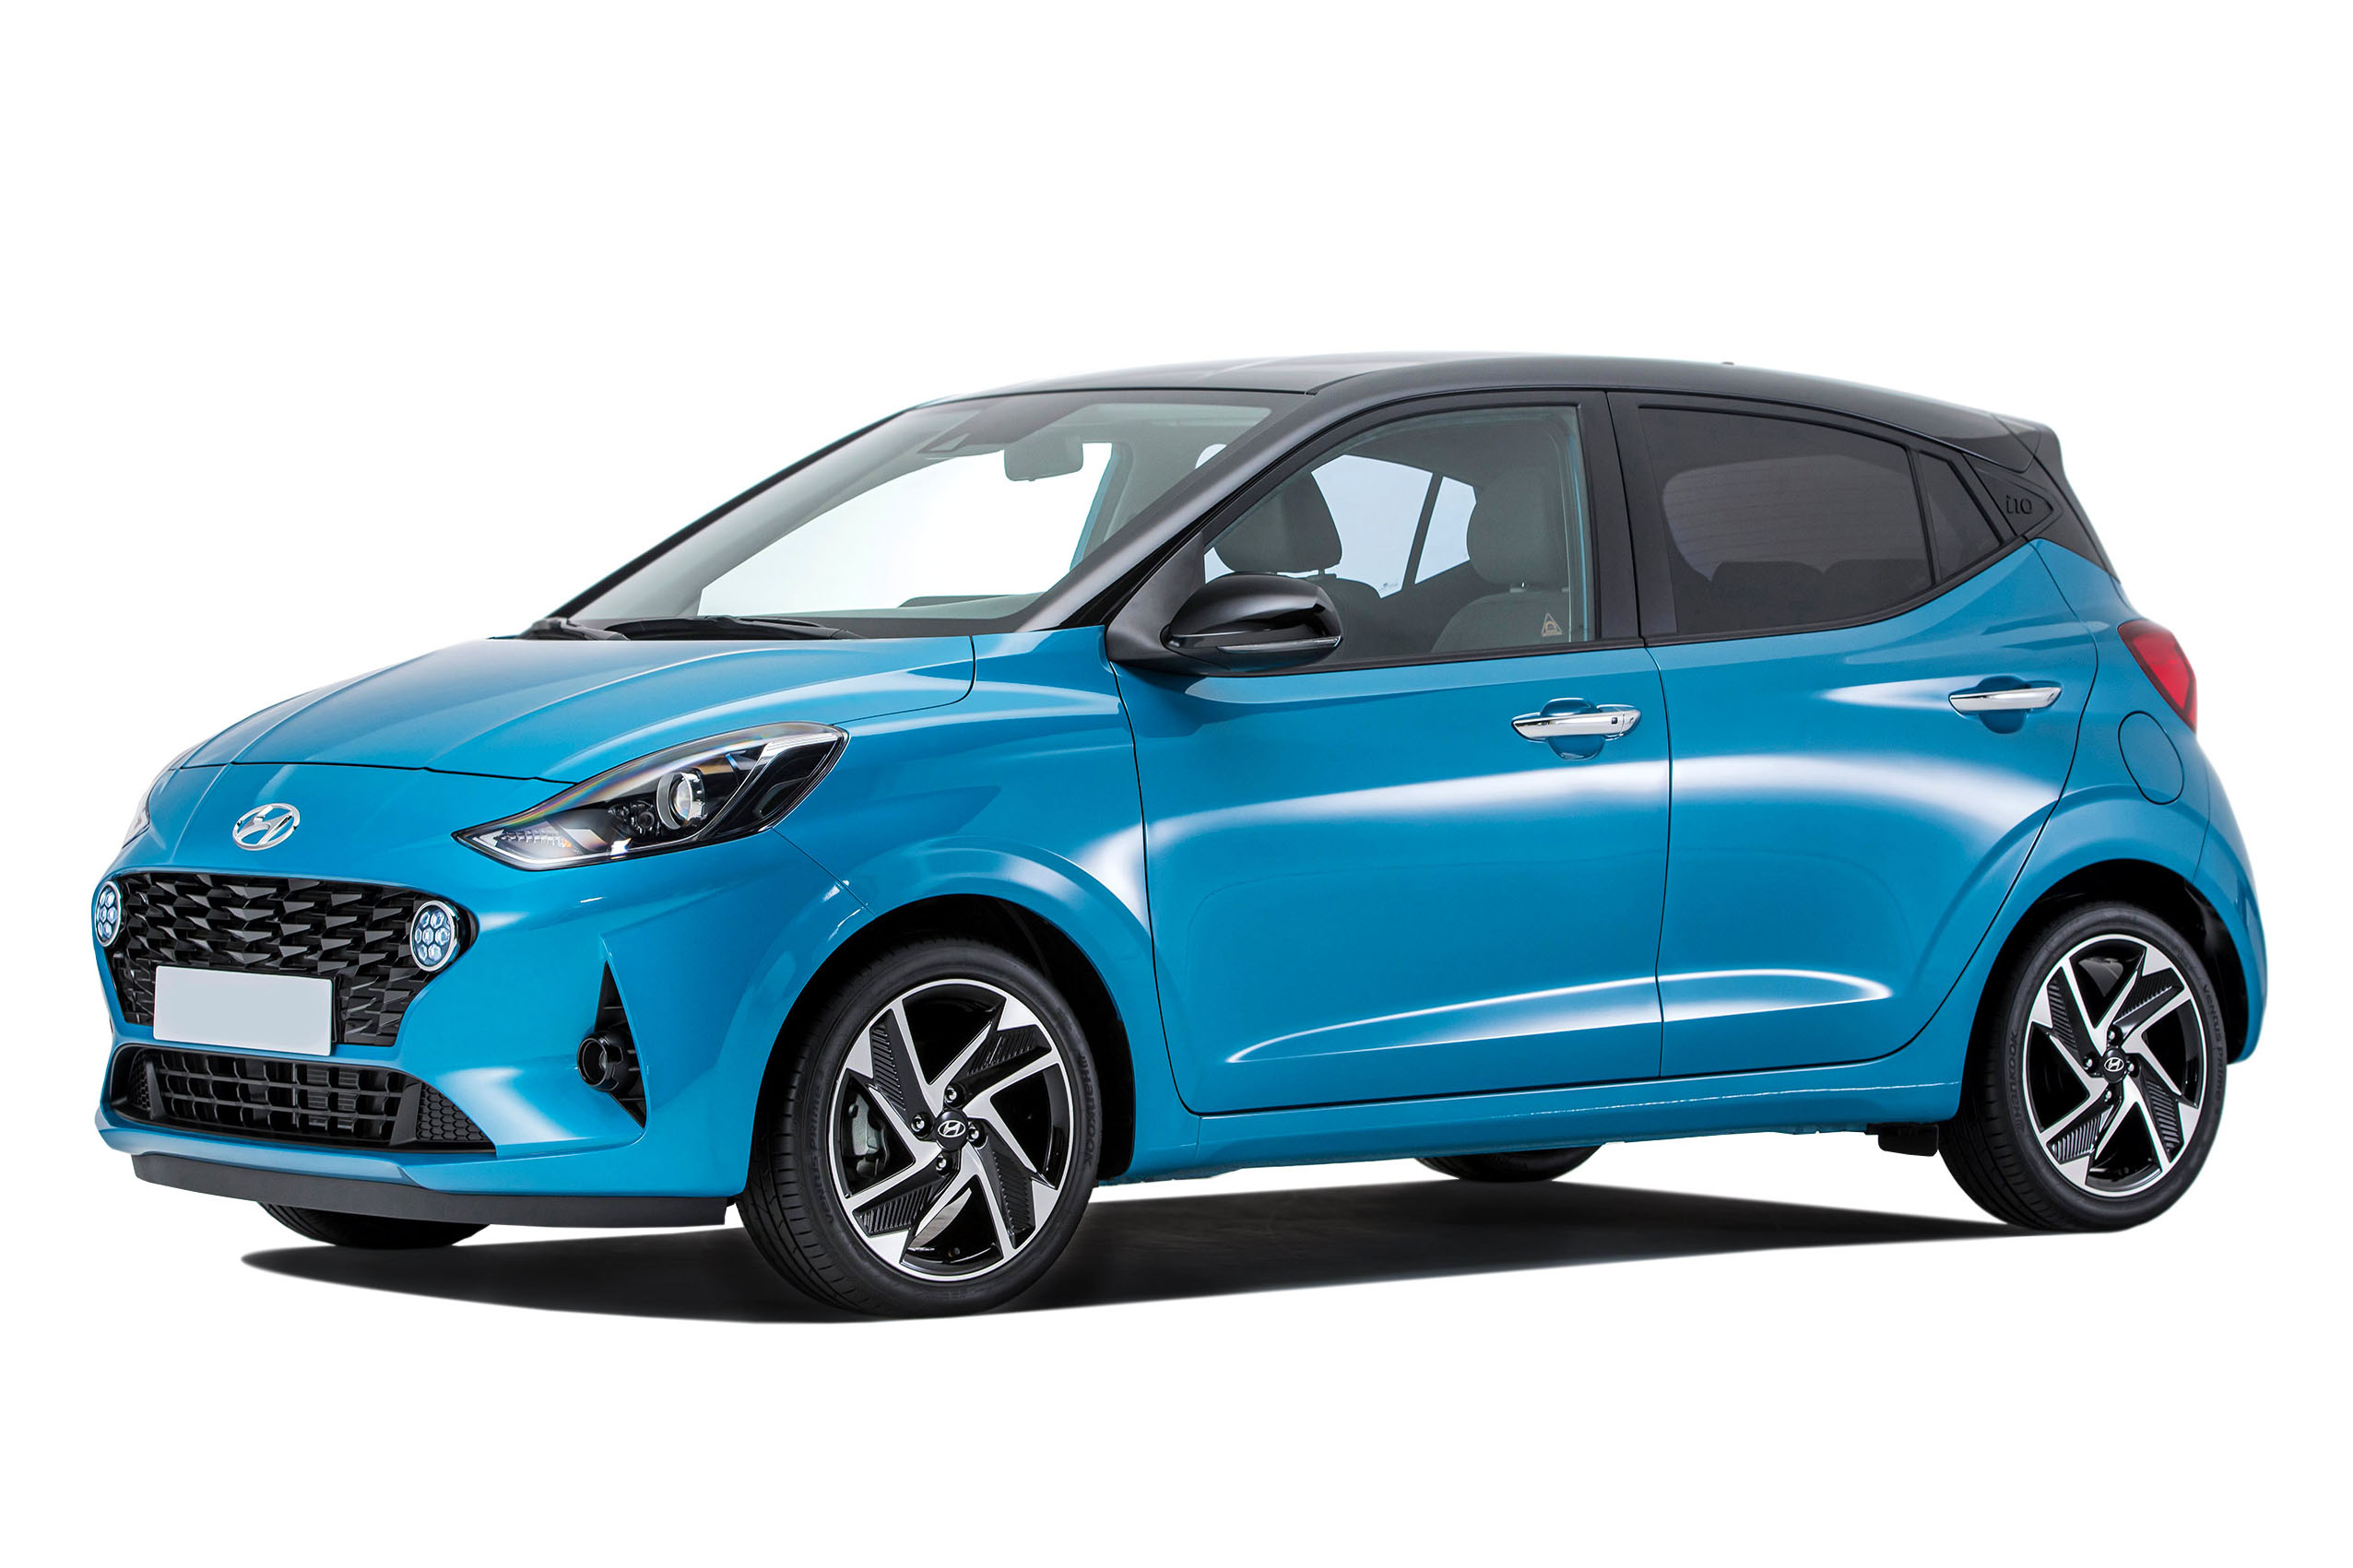 Side view of the Hyundai i10 which is available for bad credit car lease